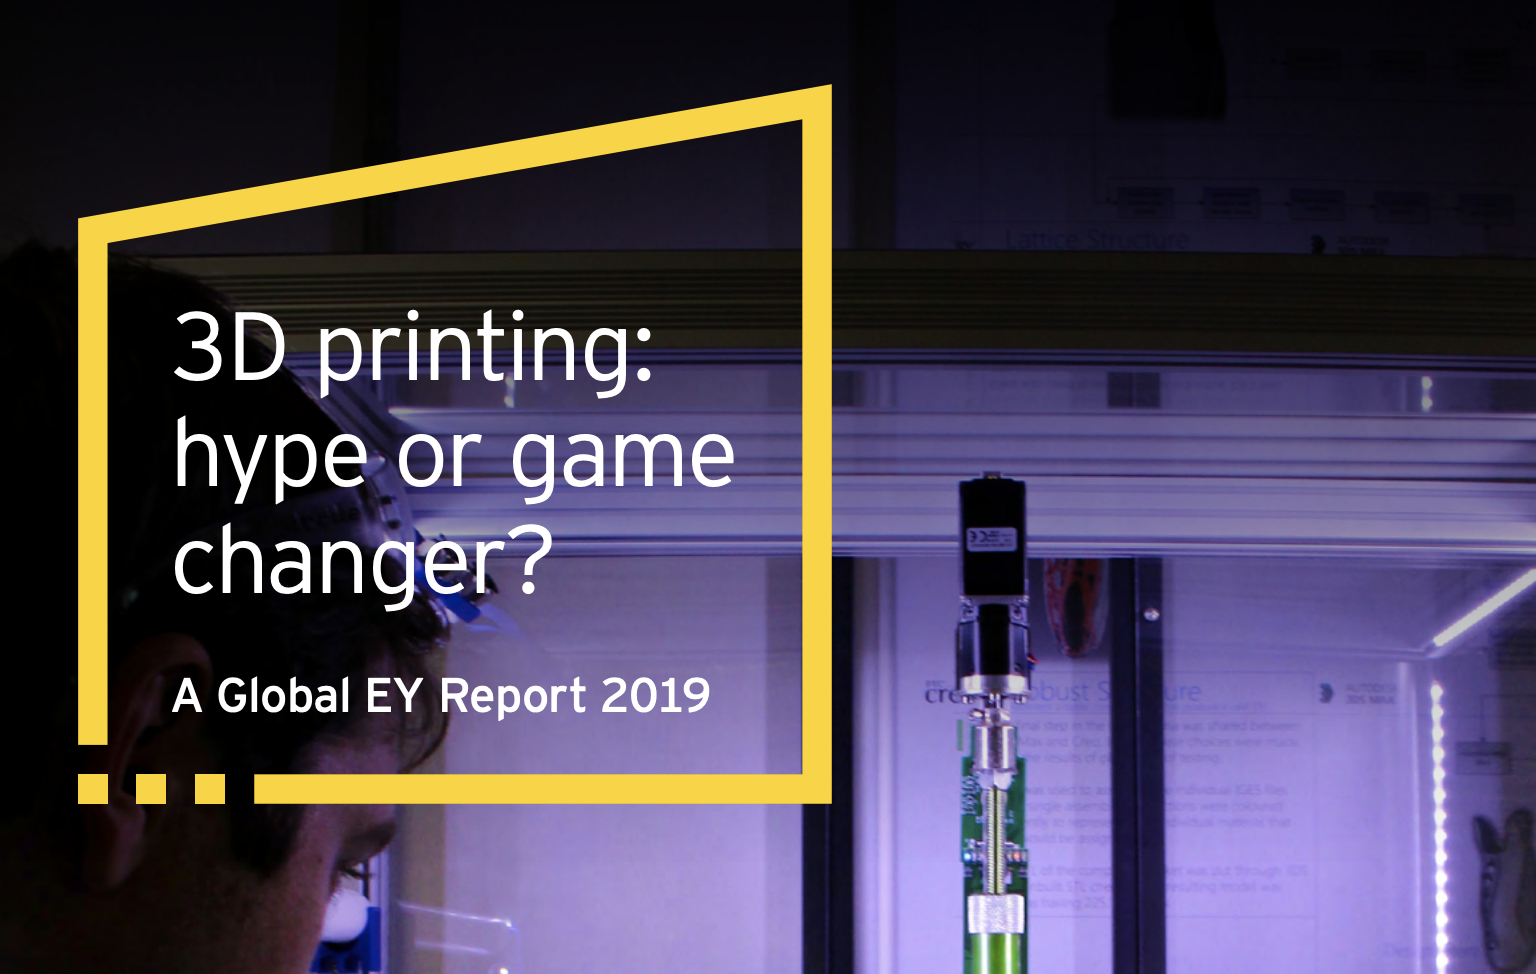 2019 Global EY Report on 3D Printing